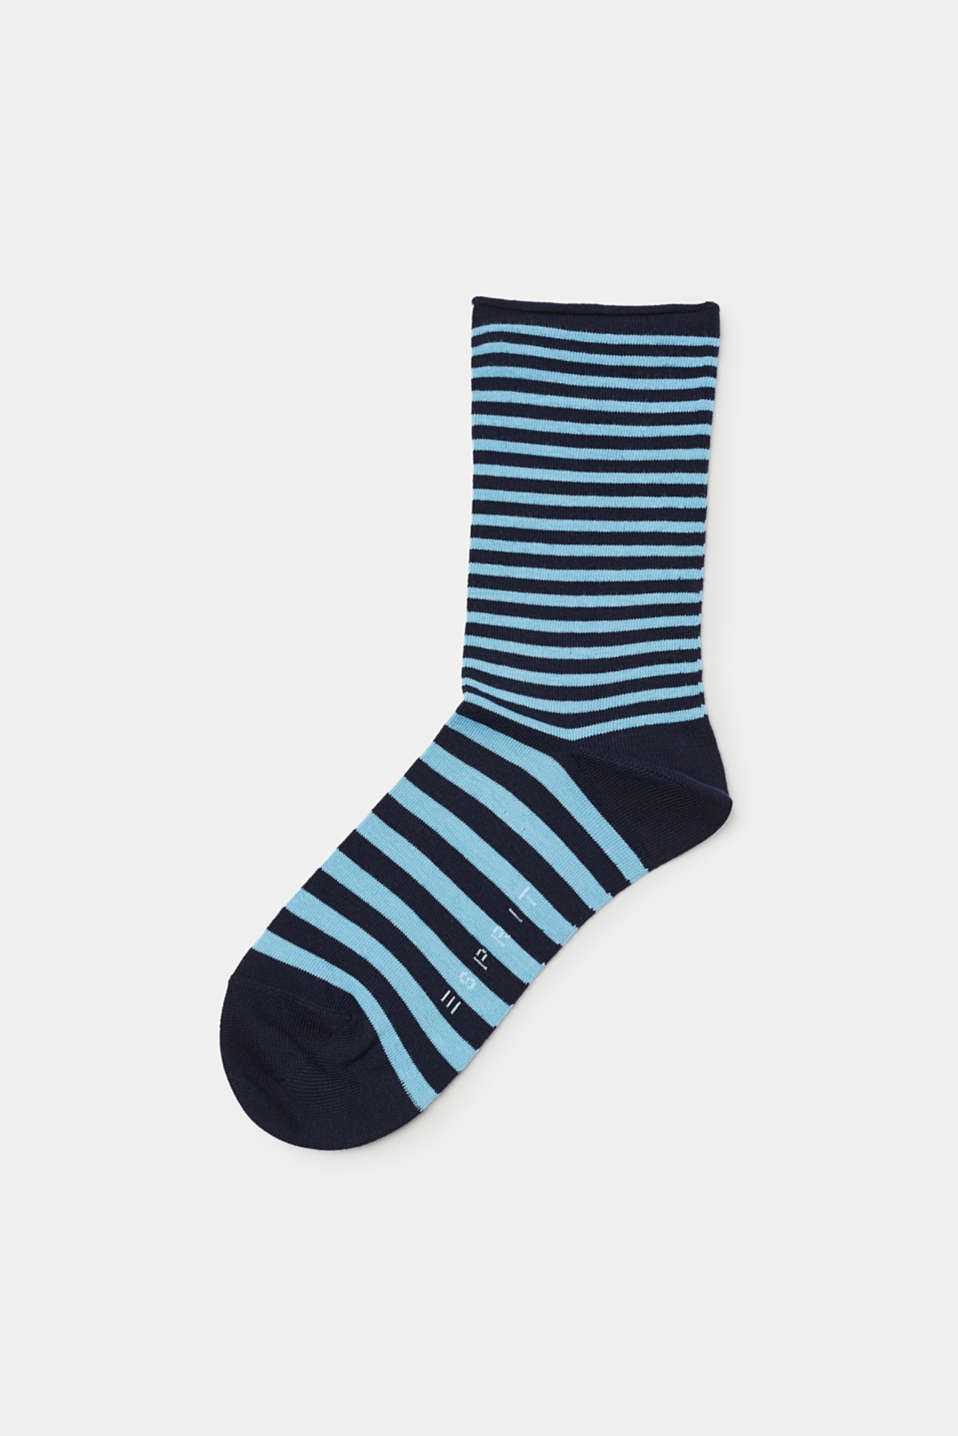 Striped socks in soft blended cotton with added stretch